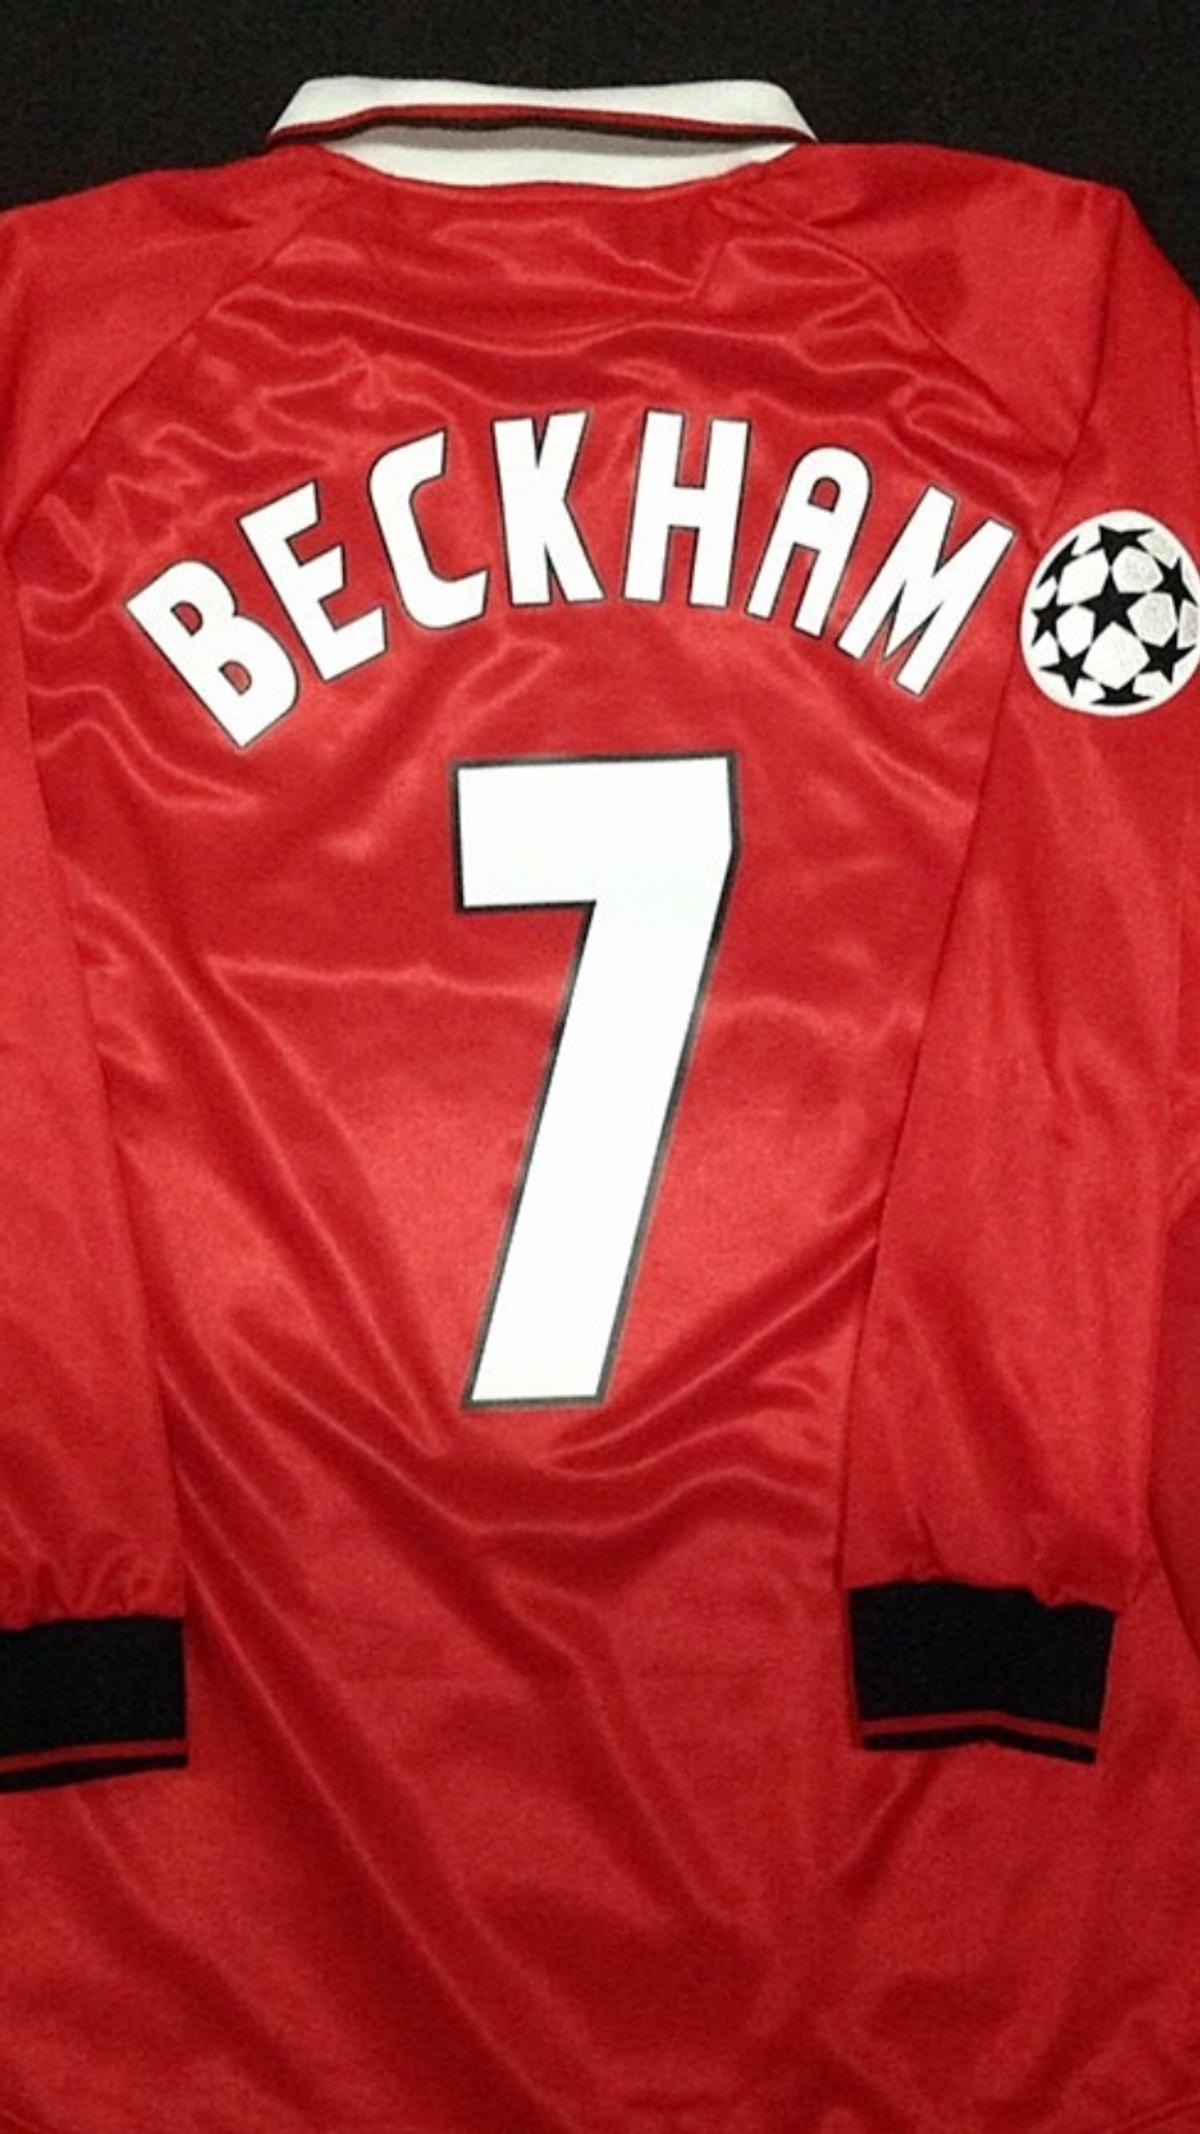 Rare Vintage Manchester United Ucl 1999 Shirt